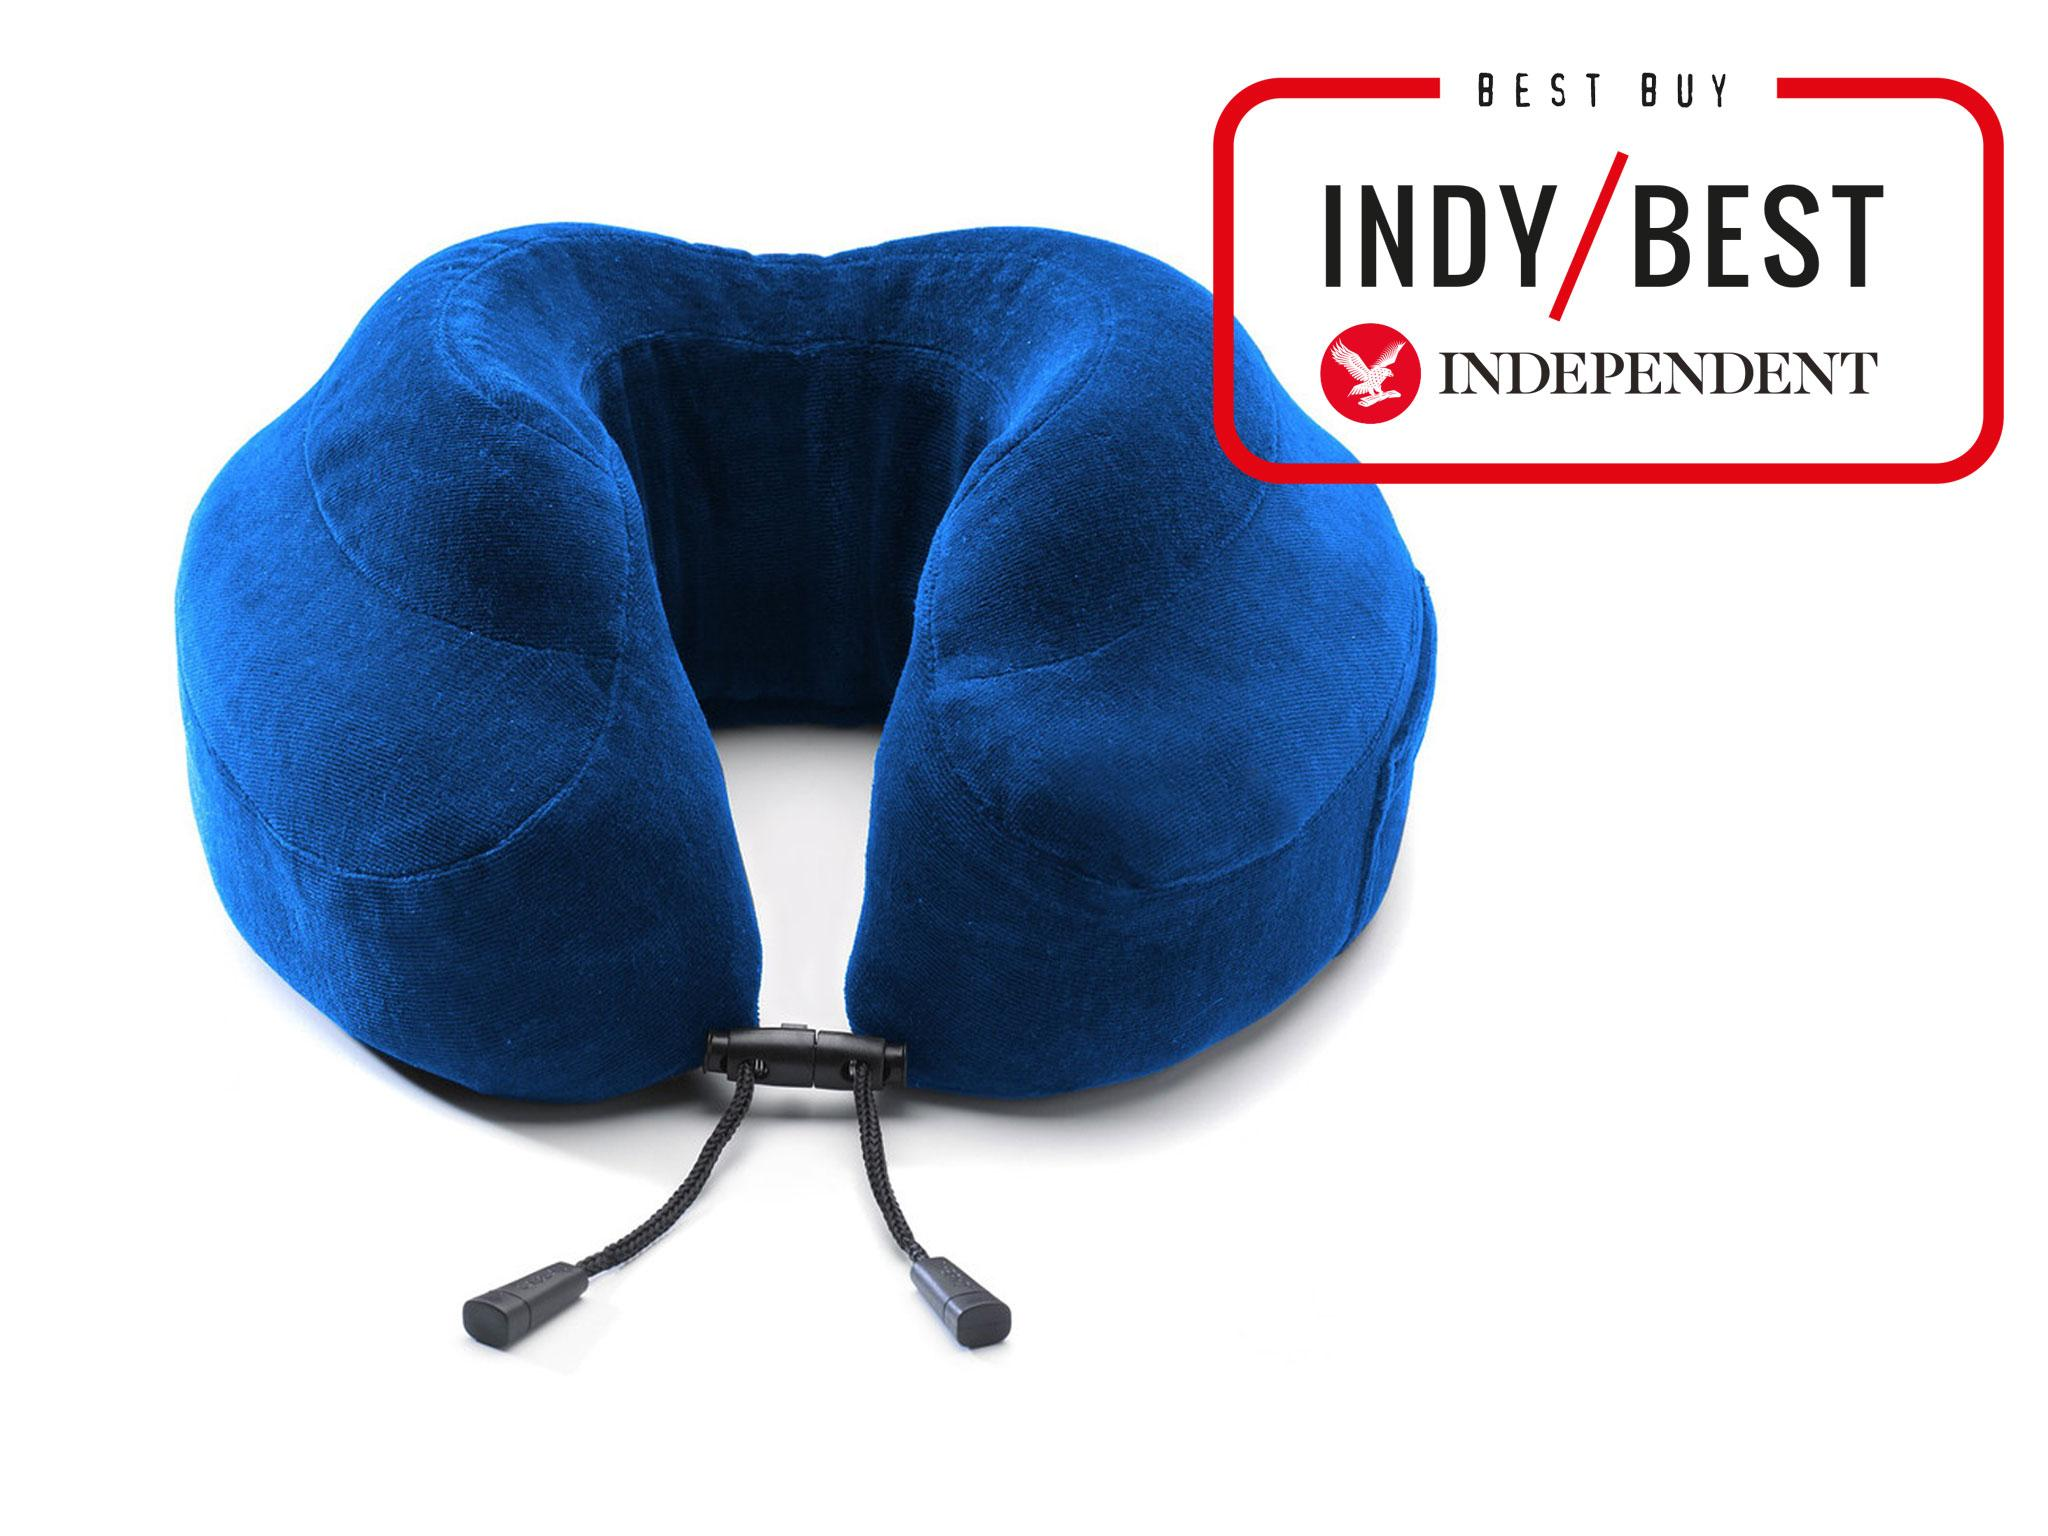 cervical travel pillows product support ergonomic neck with pillow sunshine